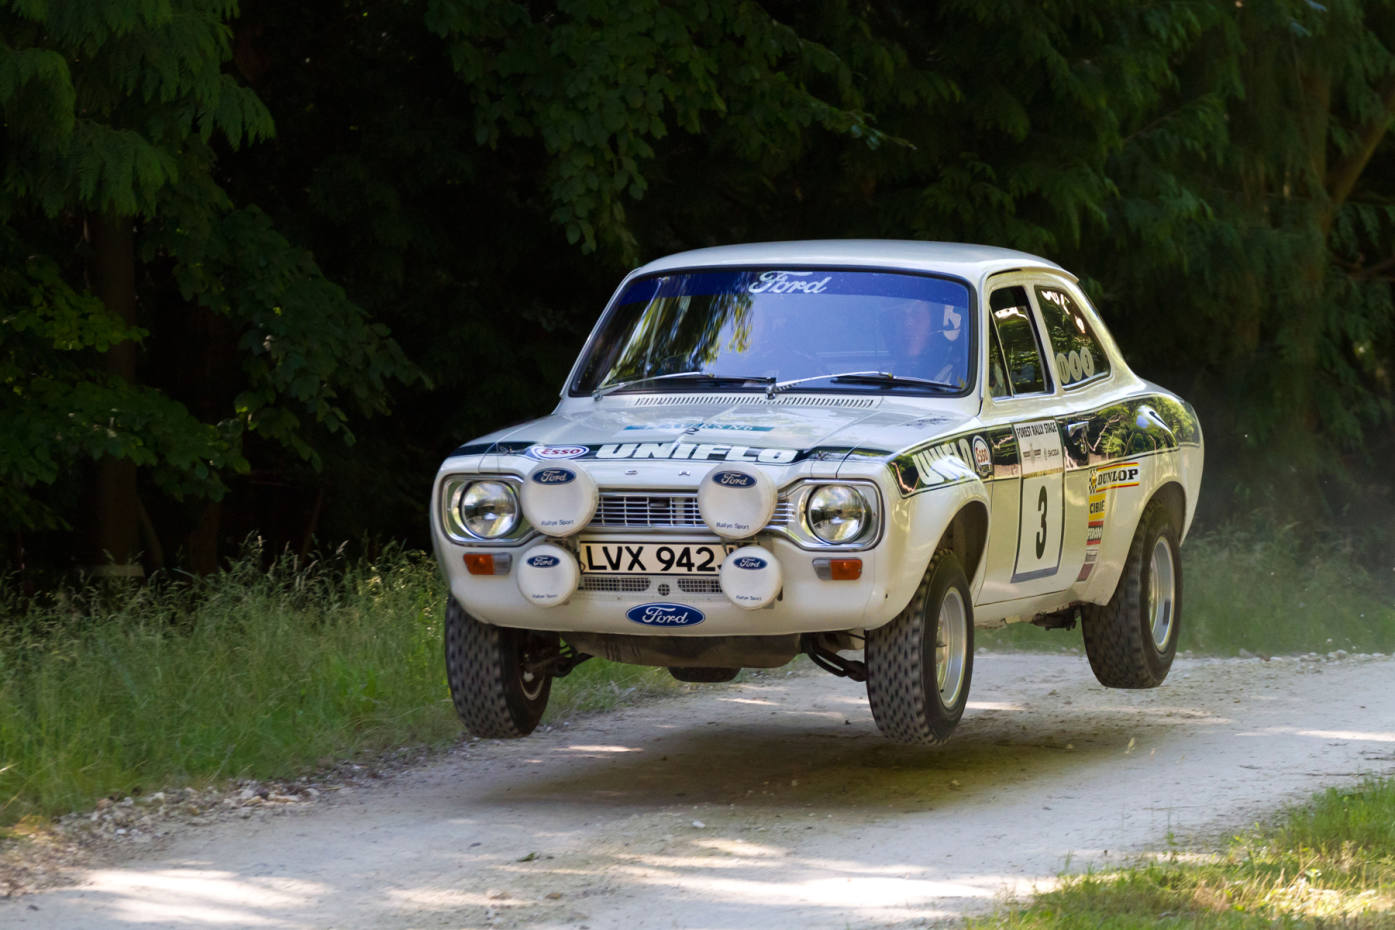 The 1972 Ford Escort Mk1 once driven by the late rally star Roger Clark